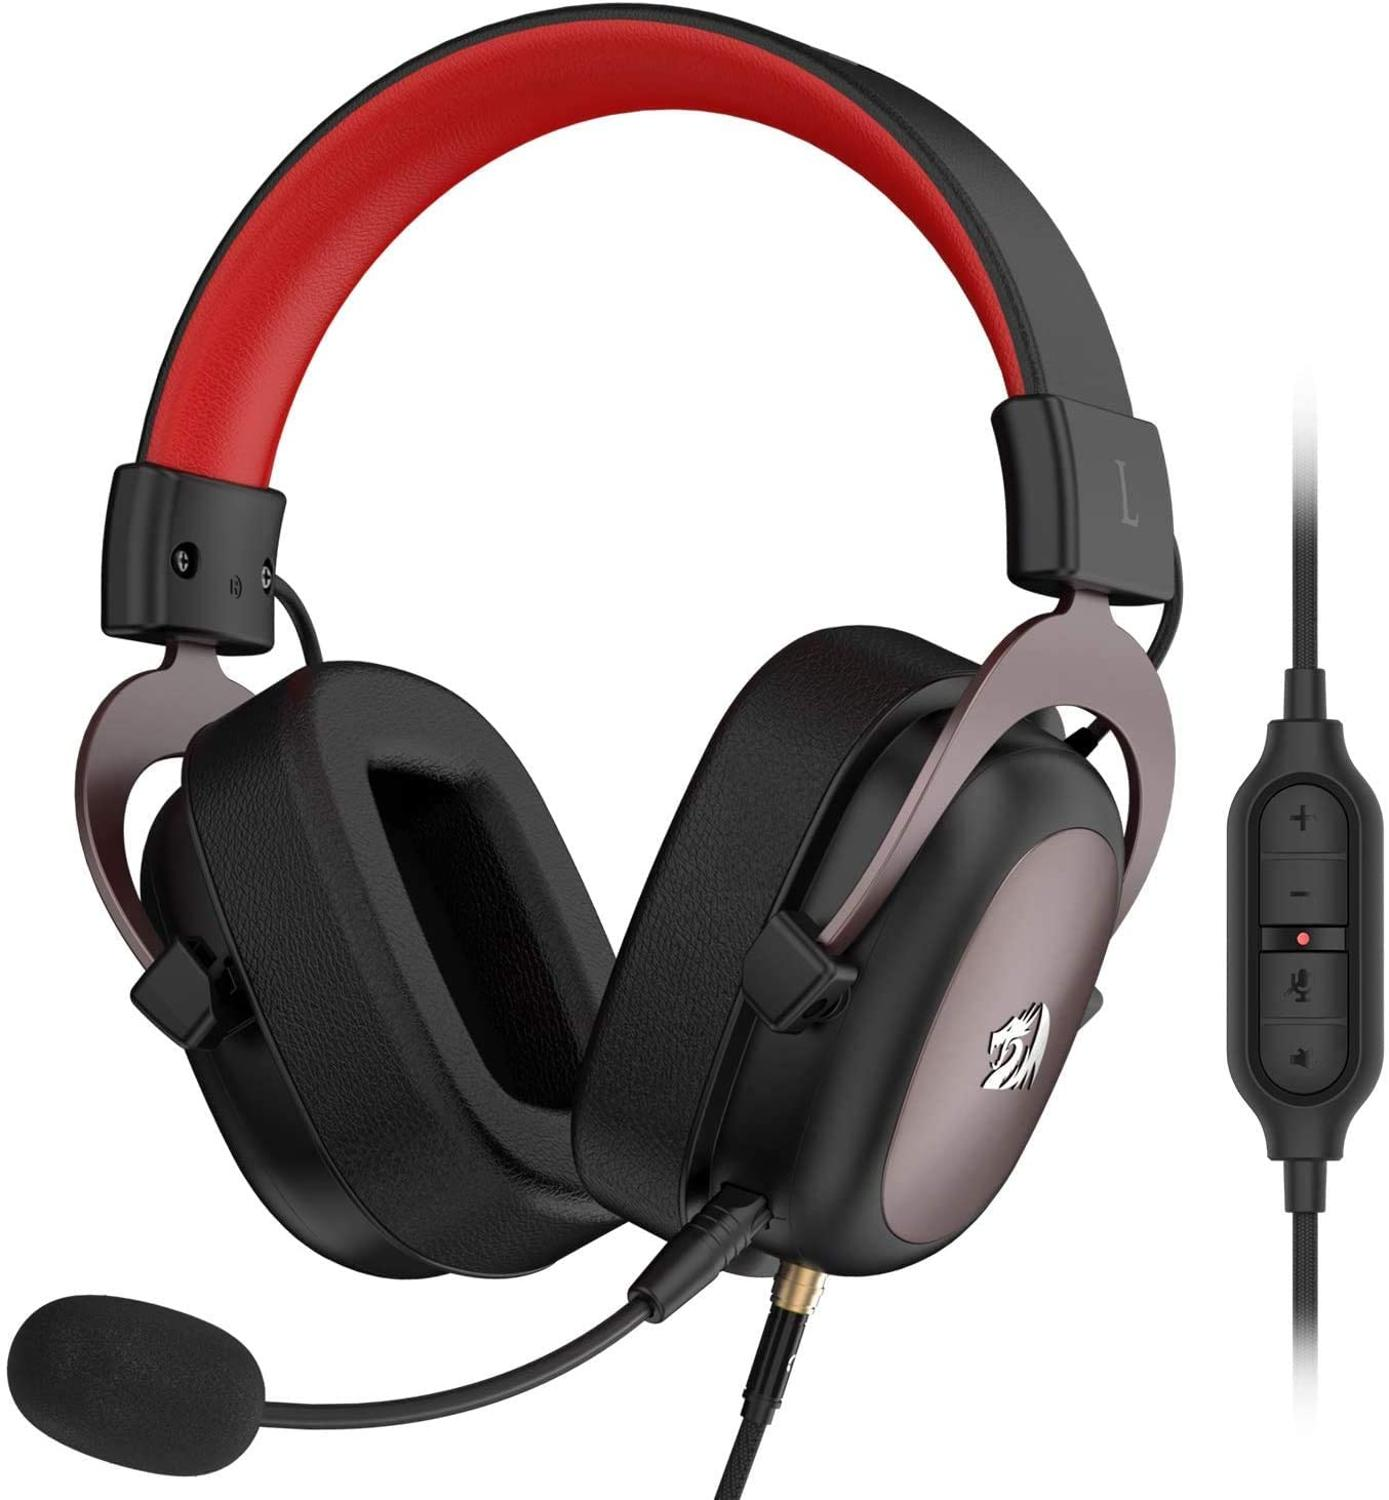 H510 Zeus wired game headset 7.1 Surround sound memory foam ear pad with removable microphone for PC/PS4 and Xbox One